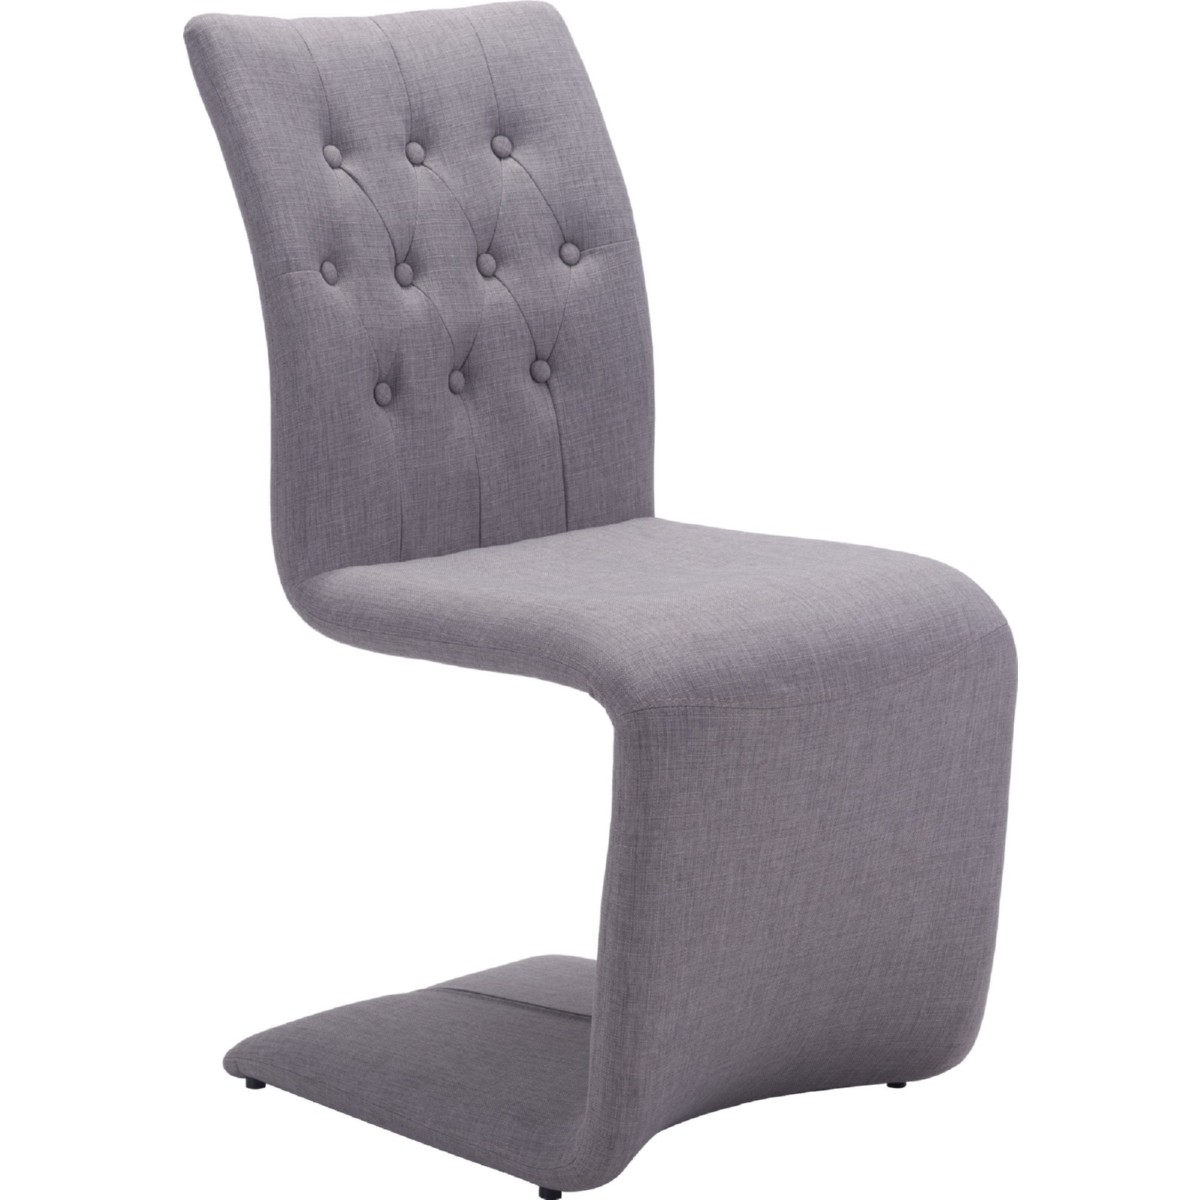 S Shaped Chair S Shaped Chair Home Design